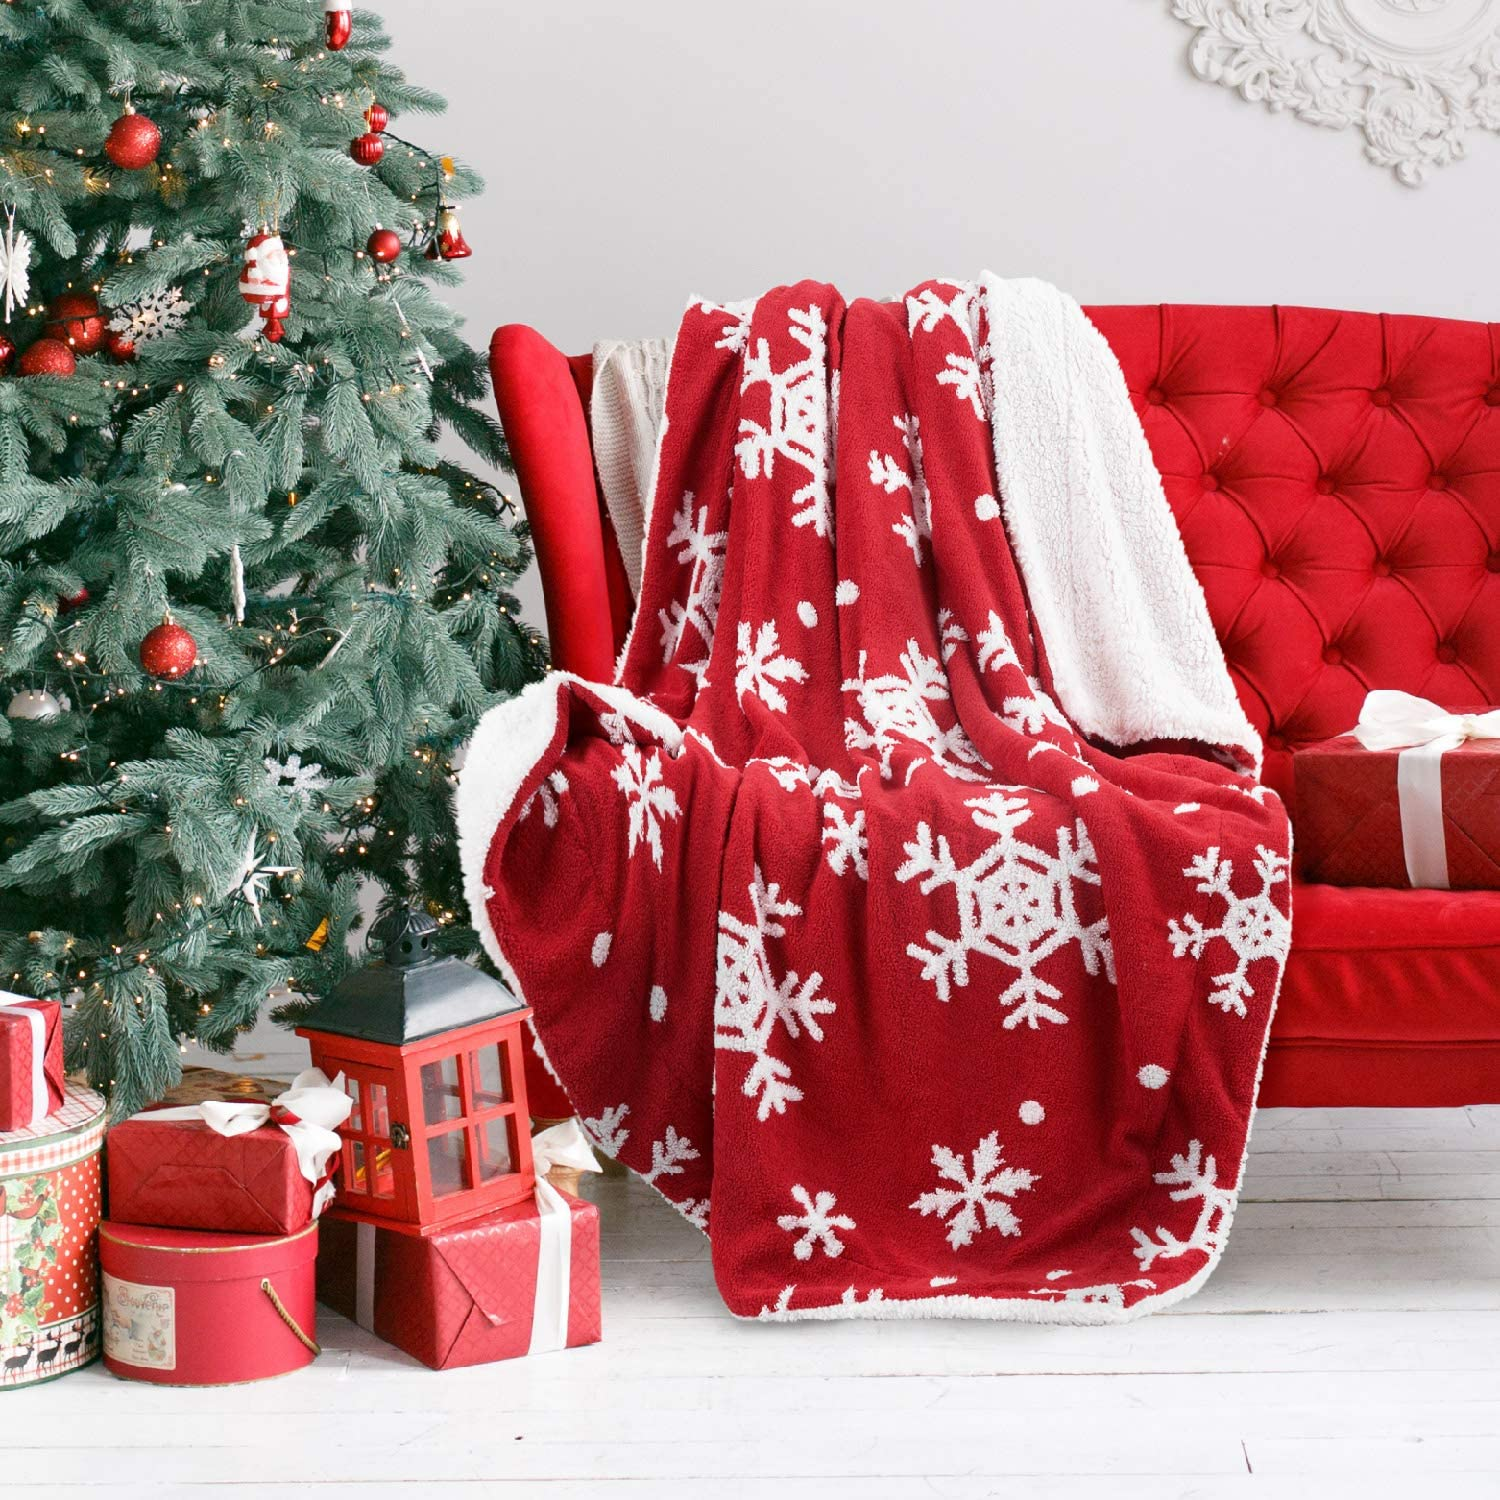 Amazon Com Bedsure Christmas Snowflake Sherpa Fleece Throw Blanket Red And White Holiday Blanket 50x60 Inches Fuzzy Warm Throws For Winter Bedding Couch Sofa And Gift Home Kitchen